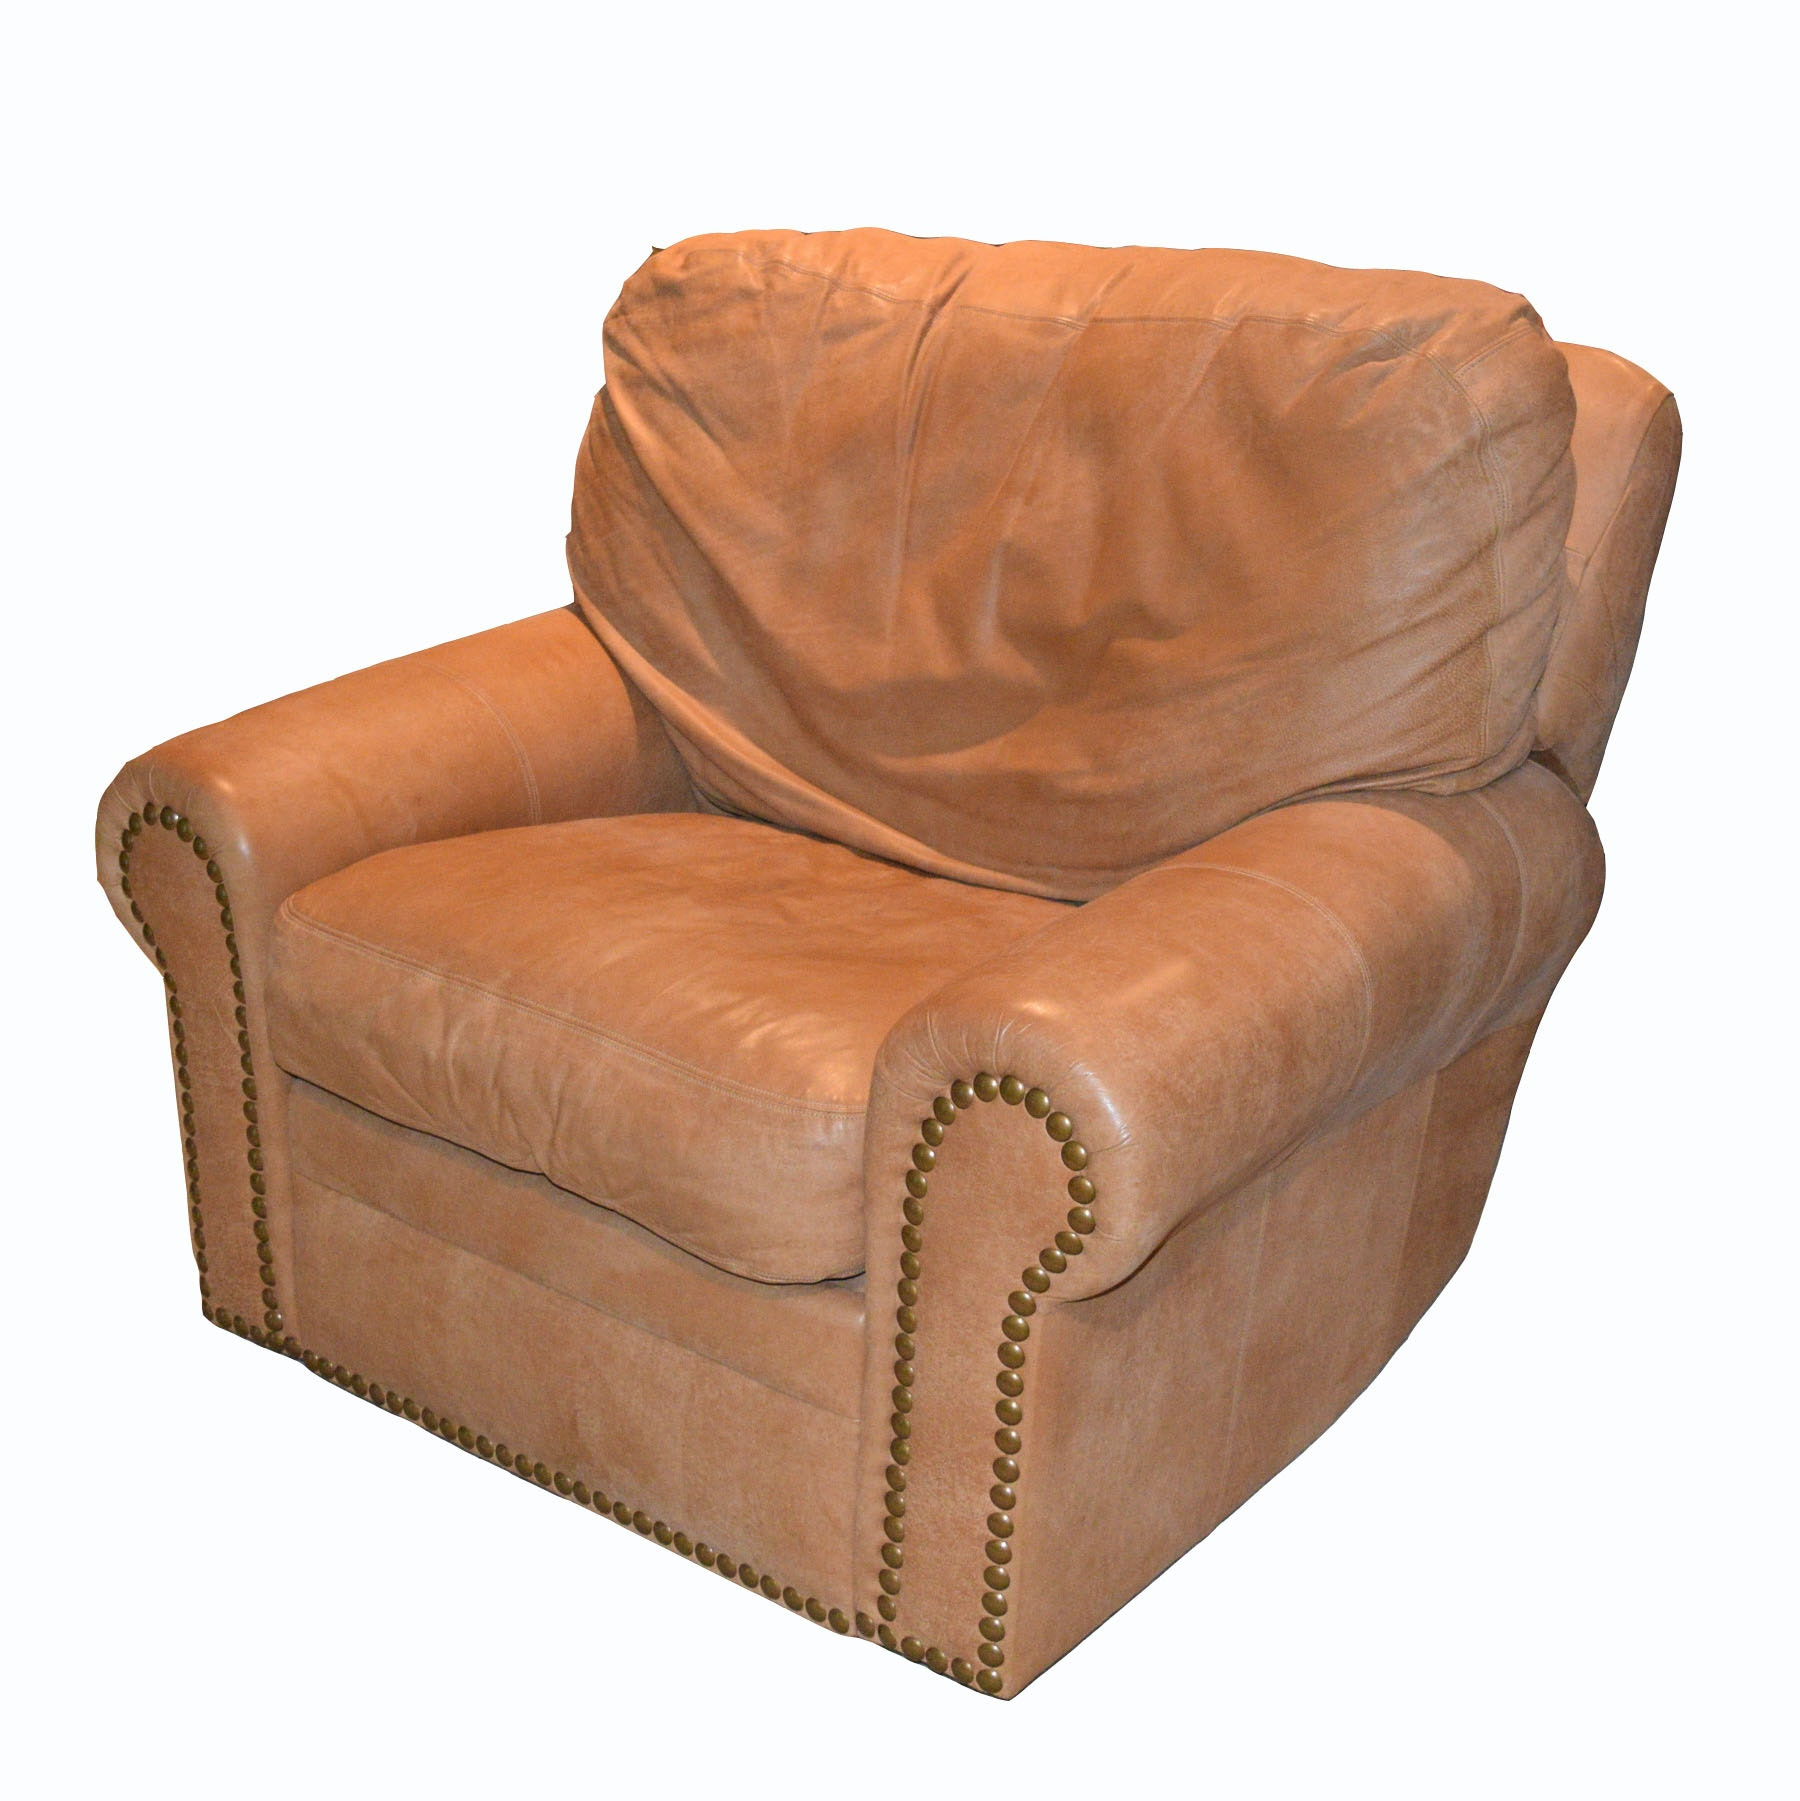 Expressions Furniture Pigskin Leather Swivel Rocking Recliner Chair ...